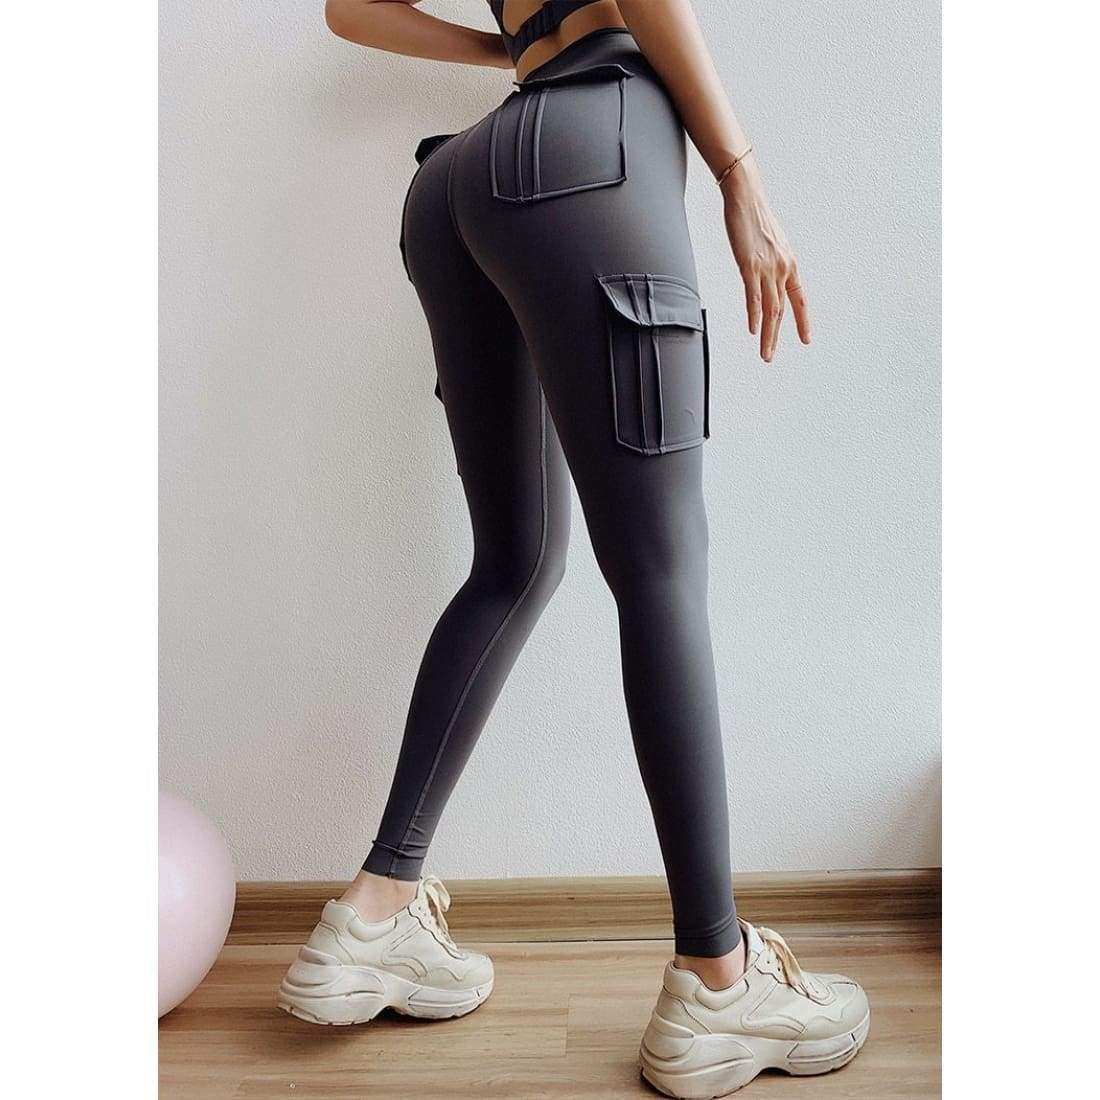 Sculpt cargo leggings - M / Gray - Pants